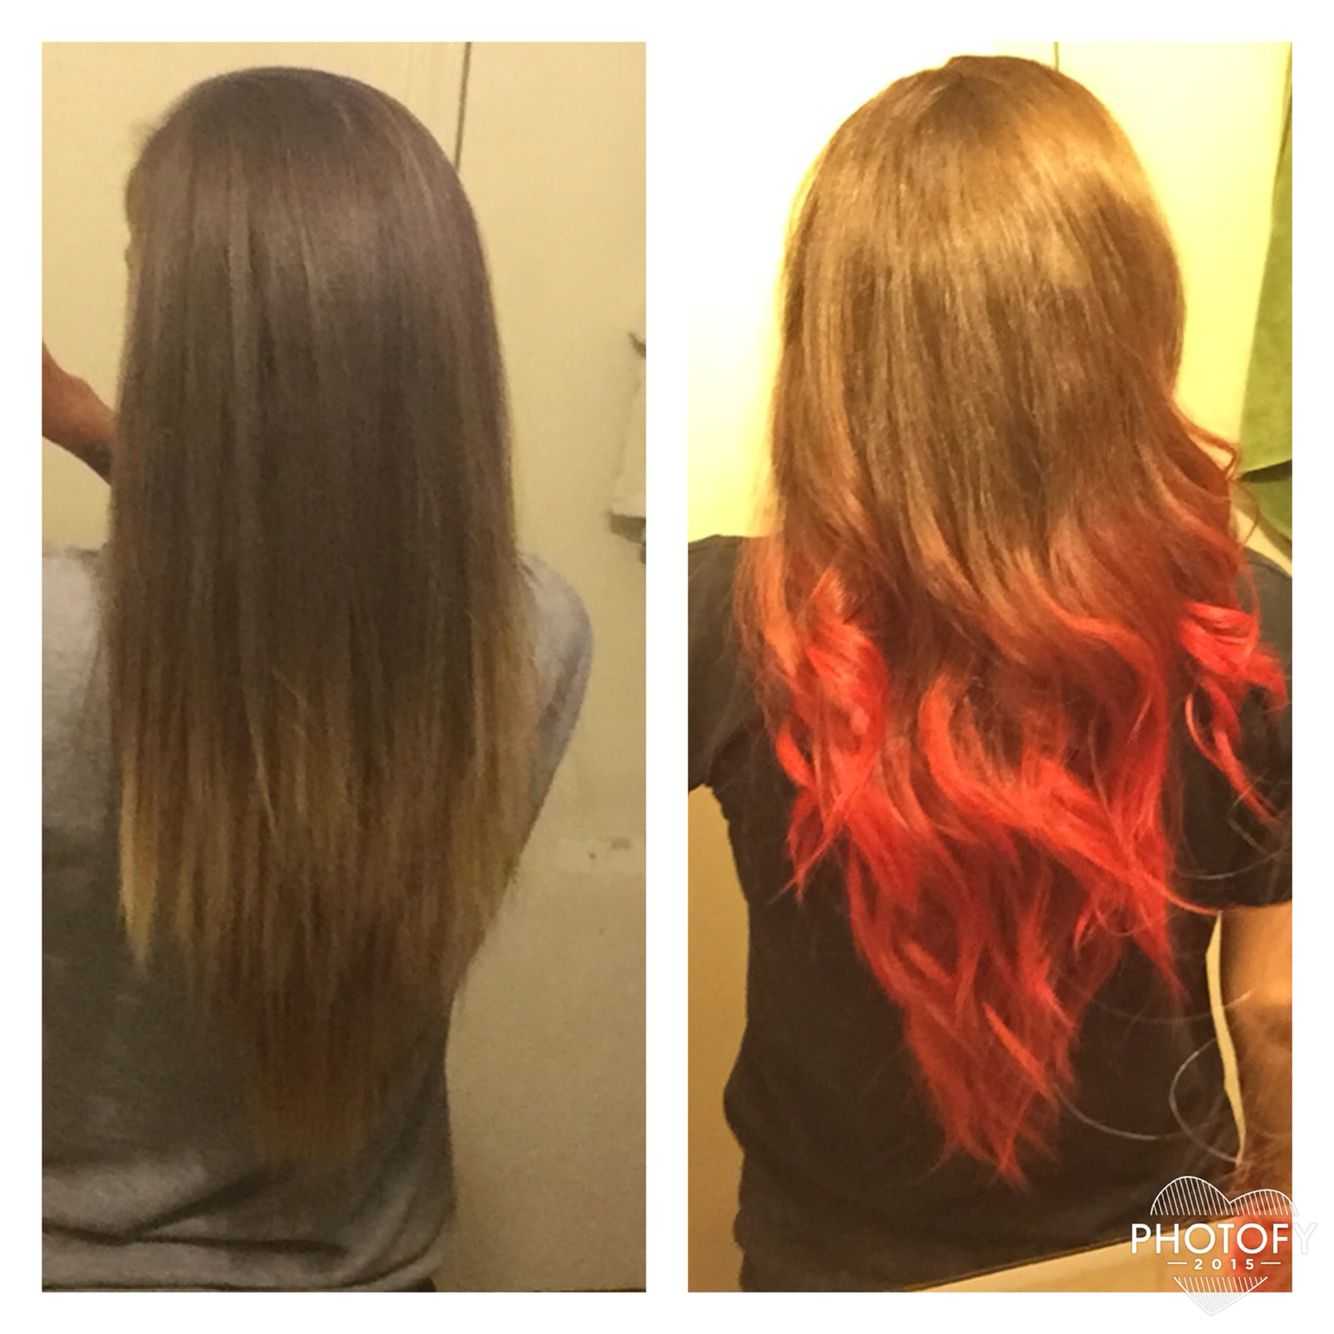 I Use Loreal Extraordinary Oil Shampoo And Conditioner To Help My